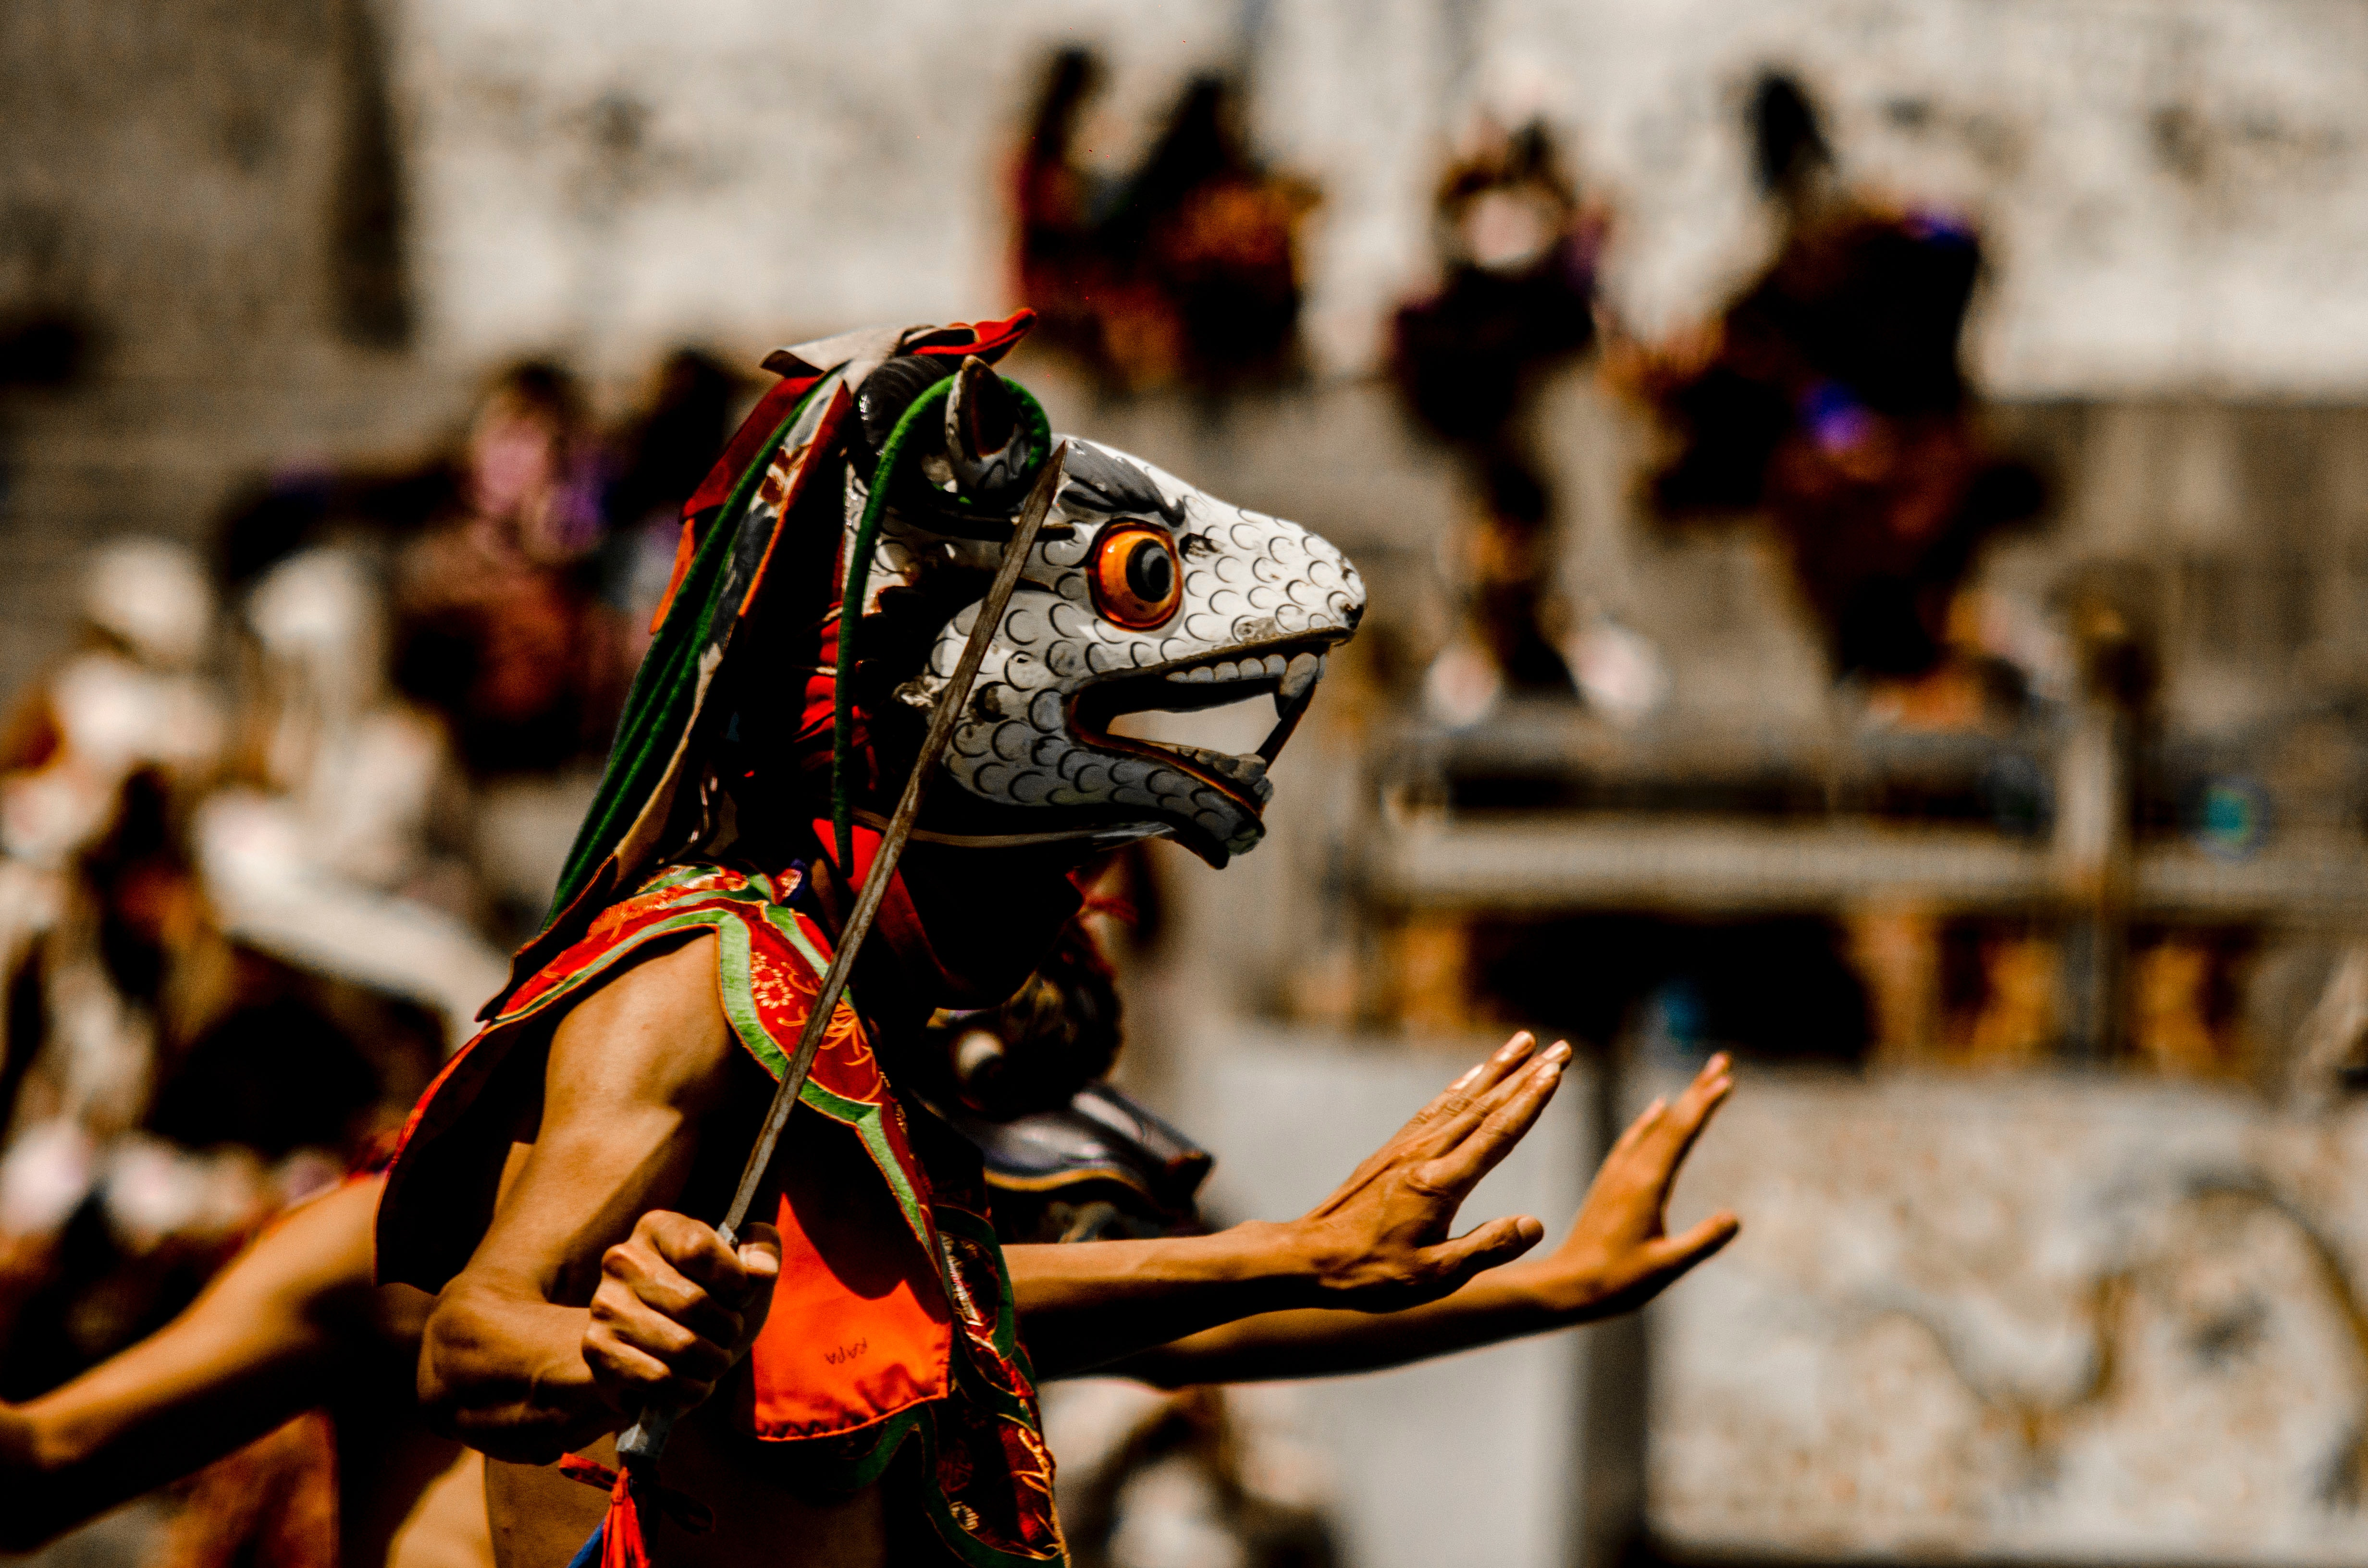 Person wearing traditional mask dancing photo